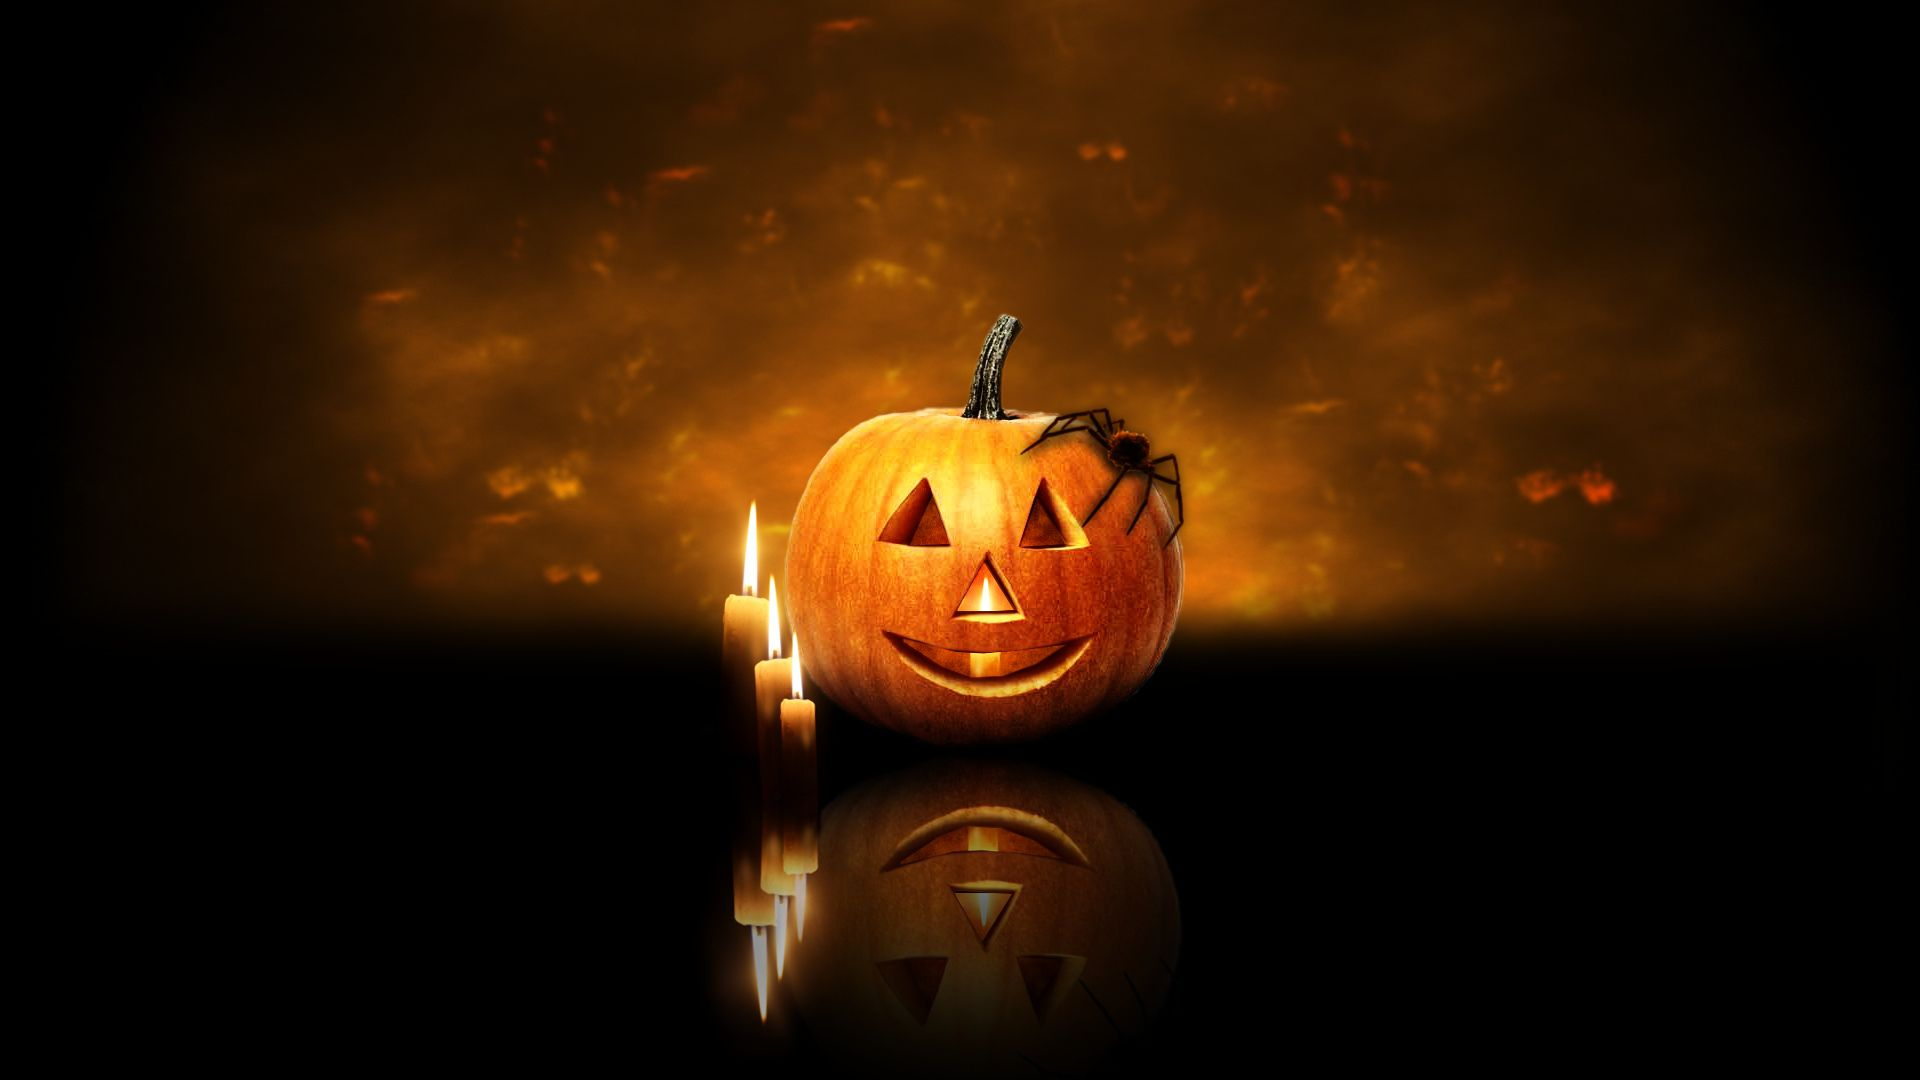 Halloween Wallpaper Hd Download For Android Halloween Images Pumpkin Wallpaper Halloween Pumpkins Carvings